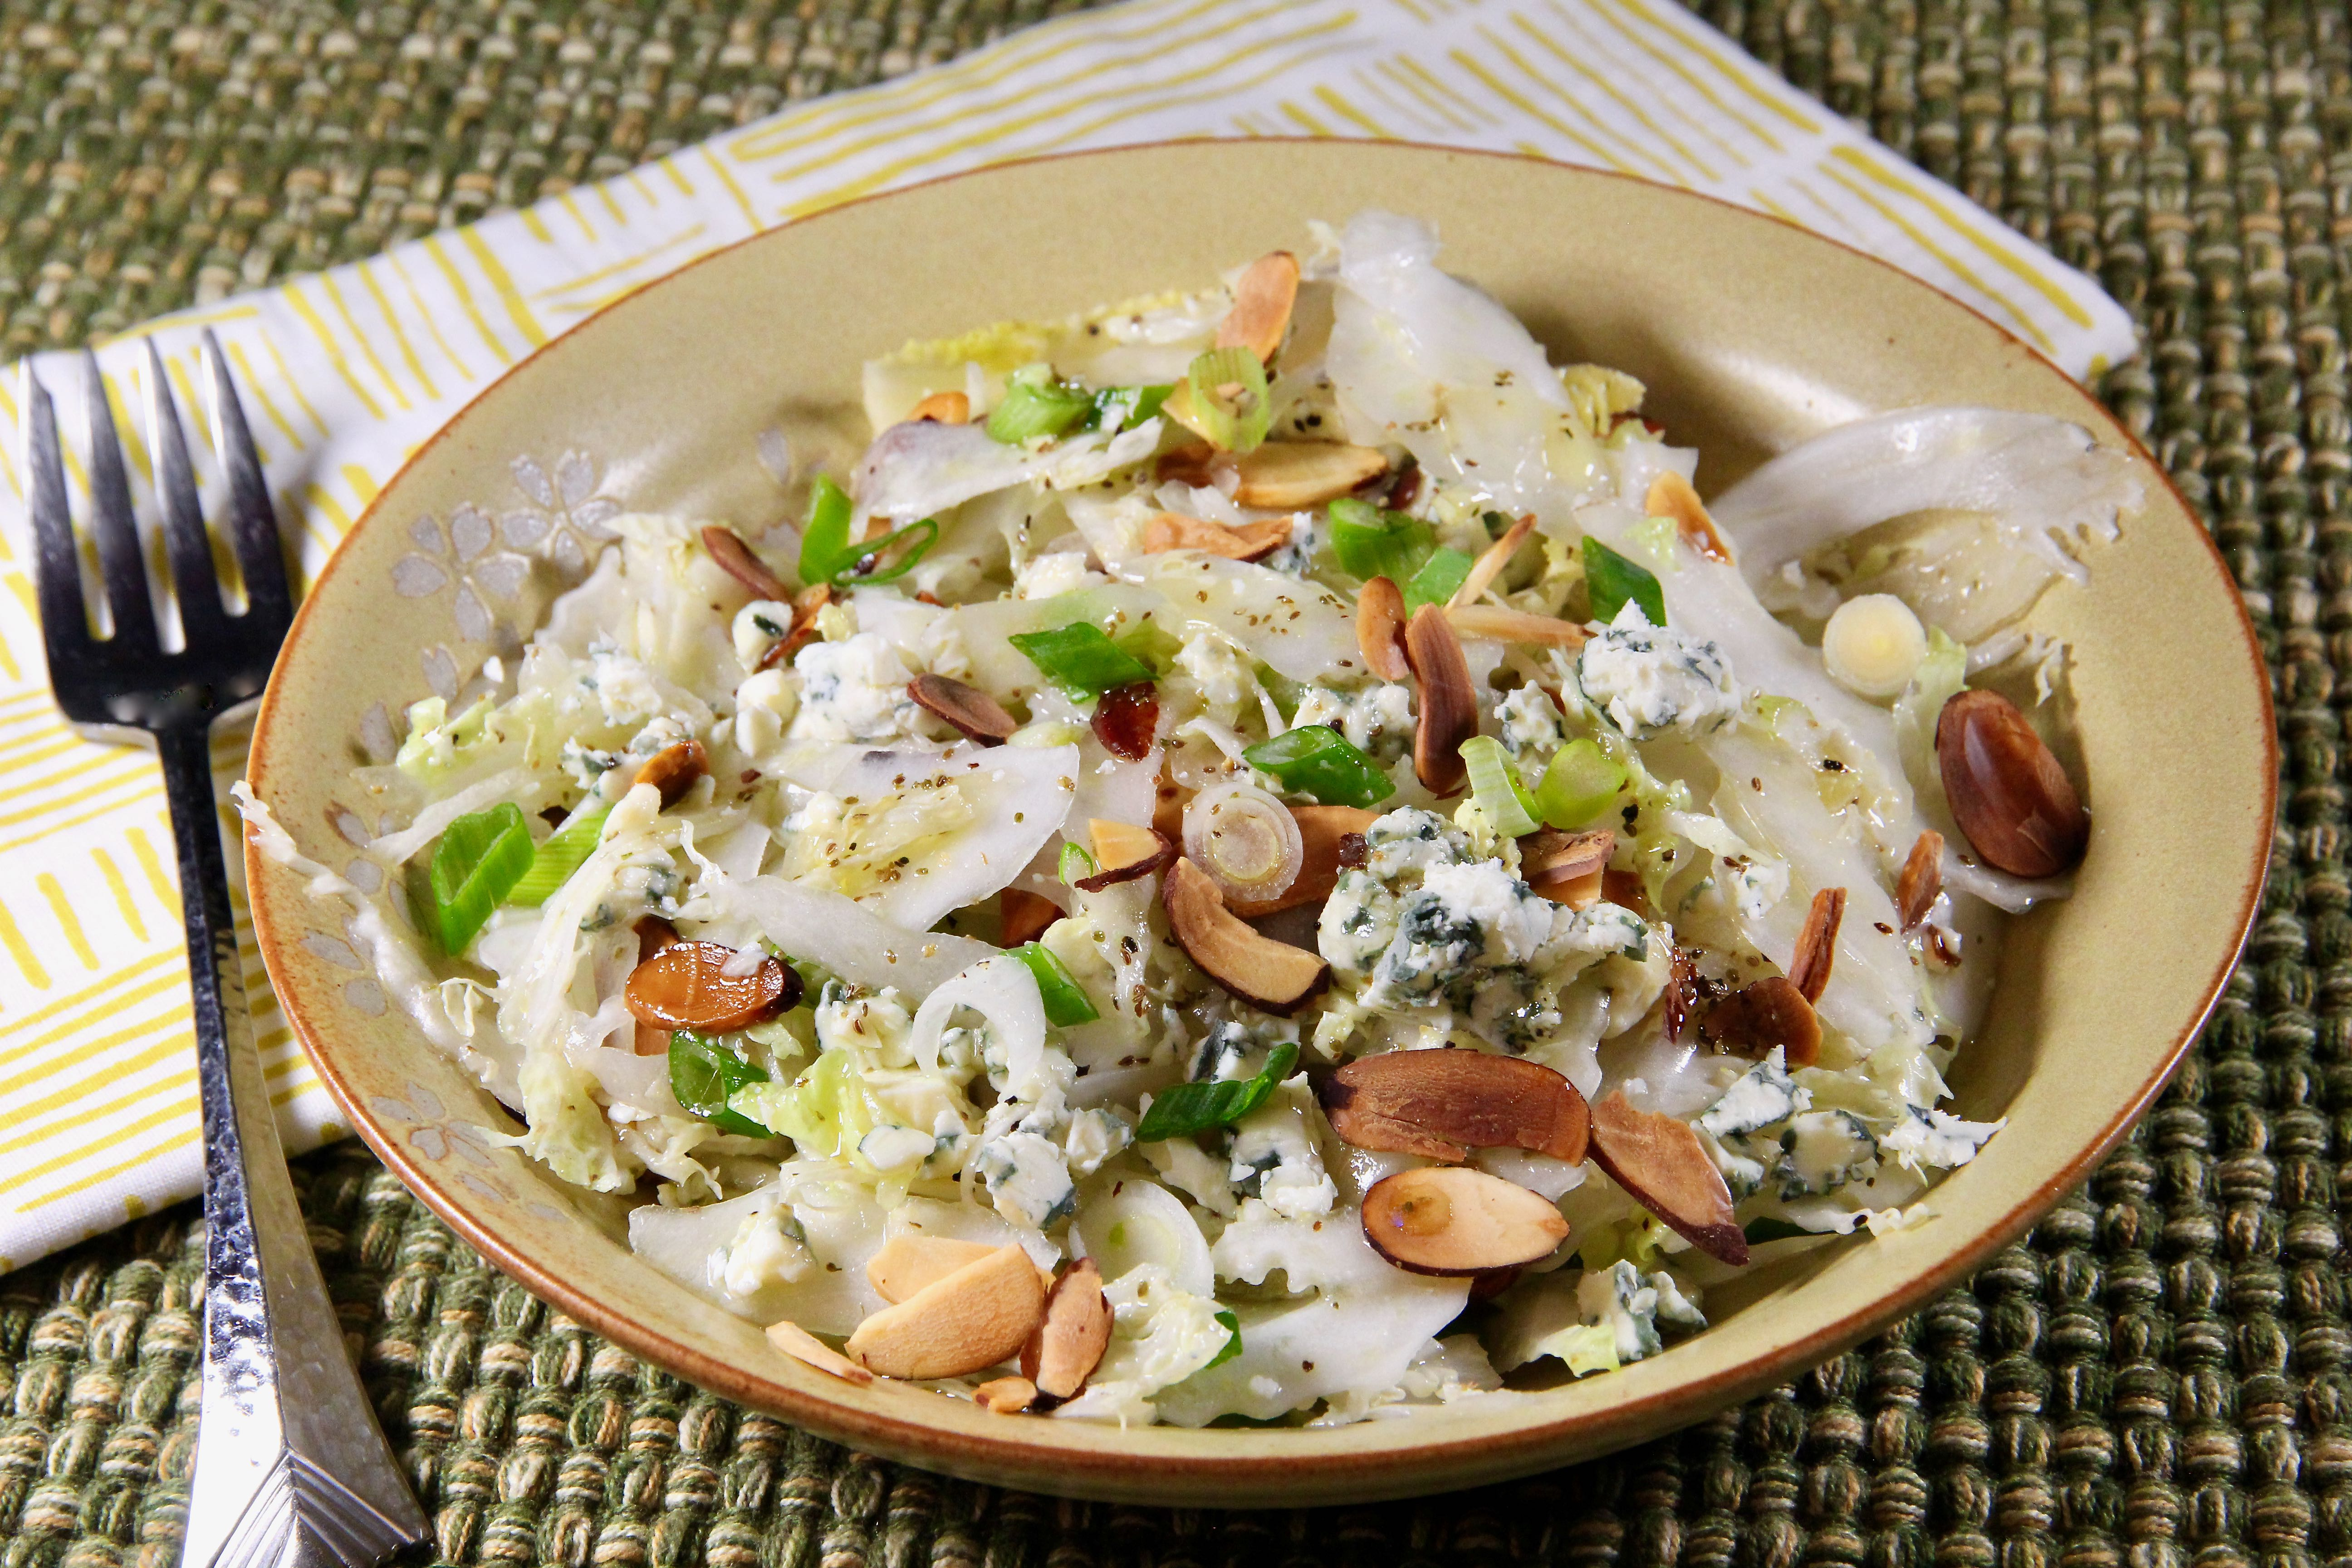 Napa Cabbage Salad with Blue Cheese